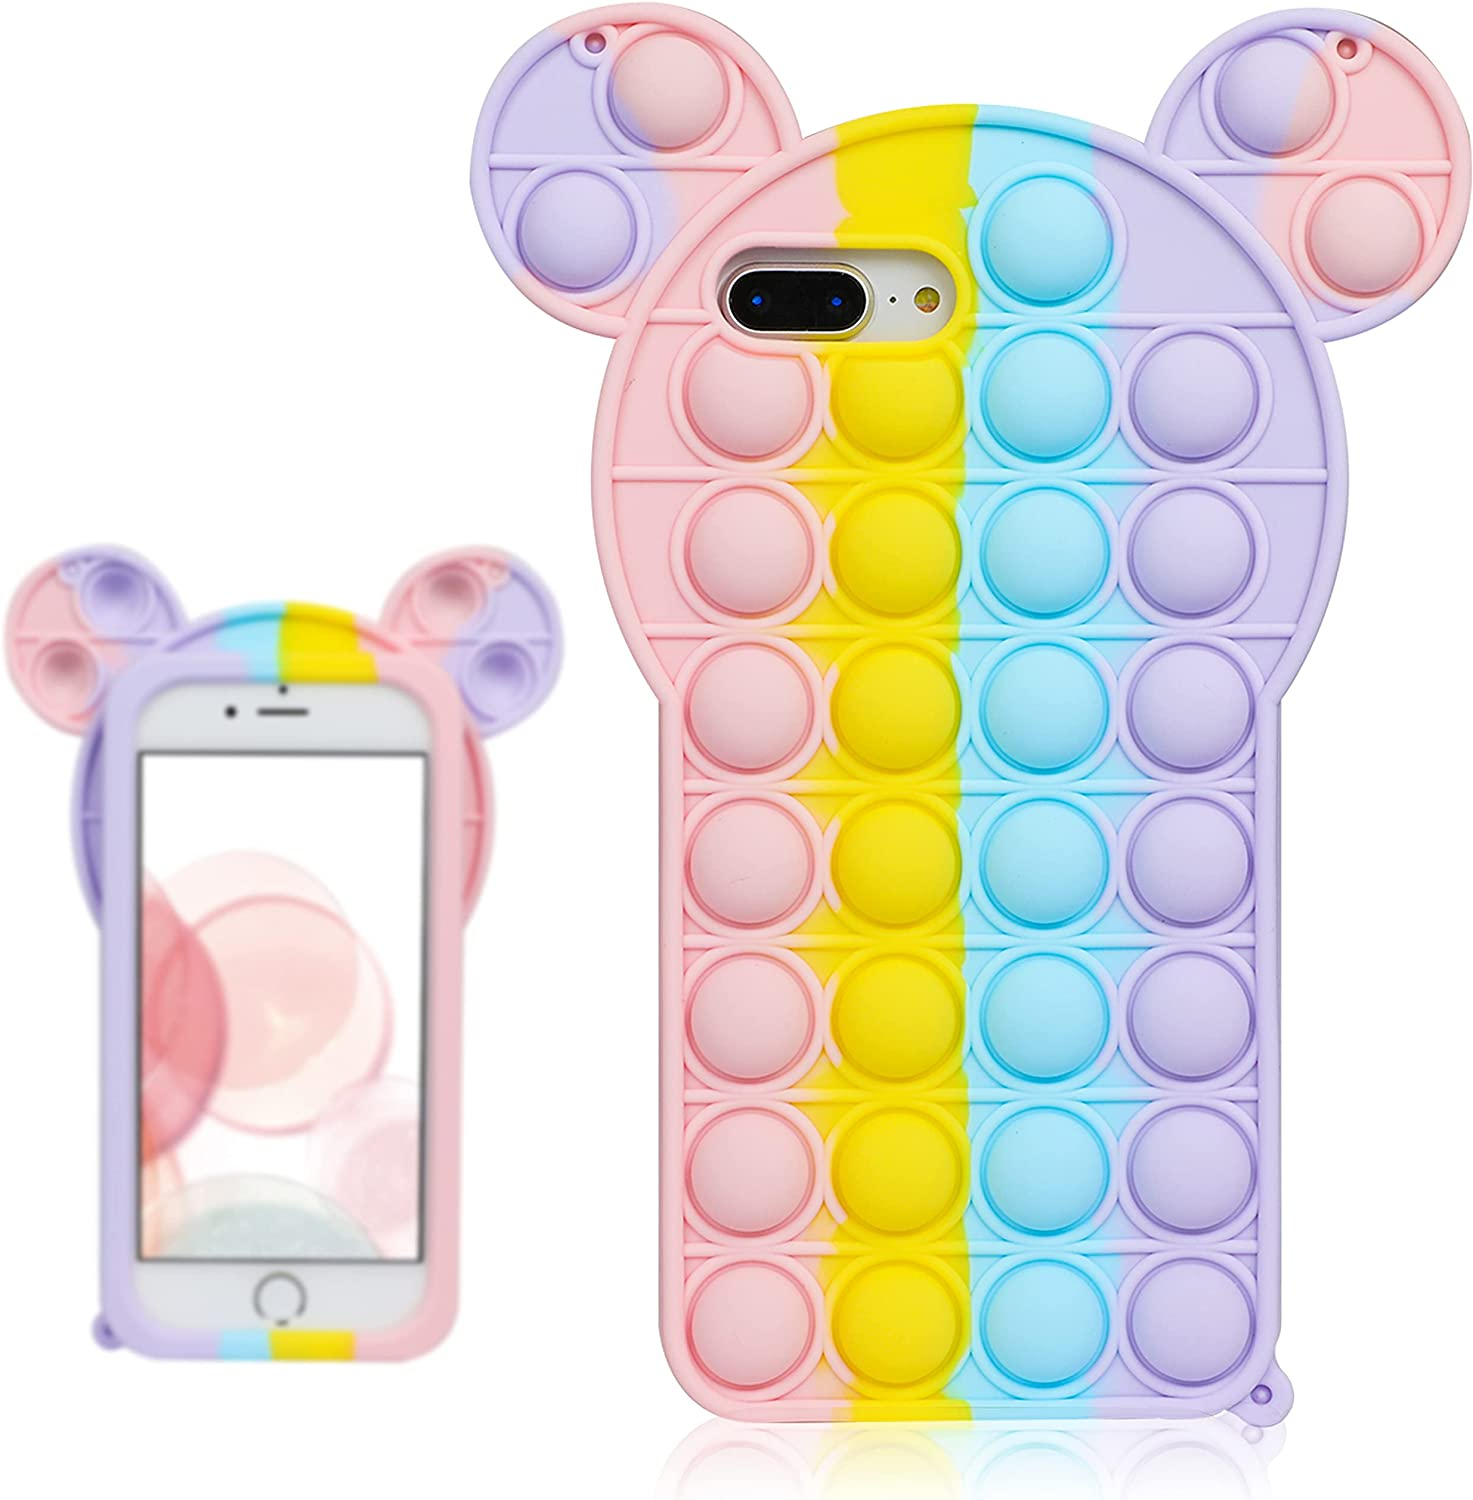 oqpa for iPhone 7 Plus/8 Plus/6 Plus/6S Plus Case Kawaii Funny Cute Fun Silicone Design Cover for Girls Kids Boys Teen Fashion Cool Unique Fidget Mouse Bubble Cases (for iPhone 6/7/8 Plus 5.5